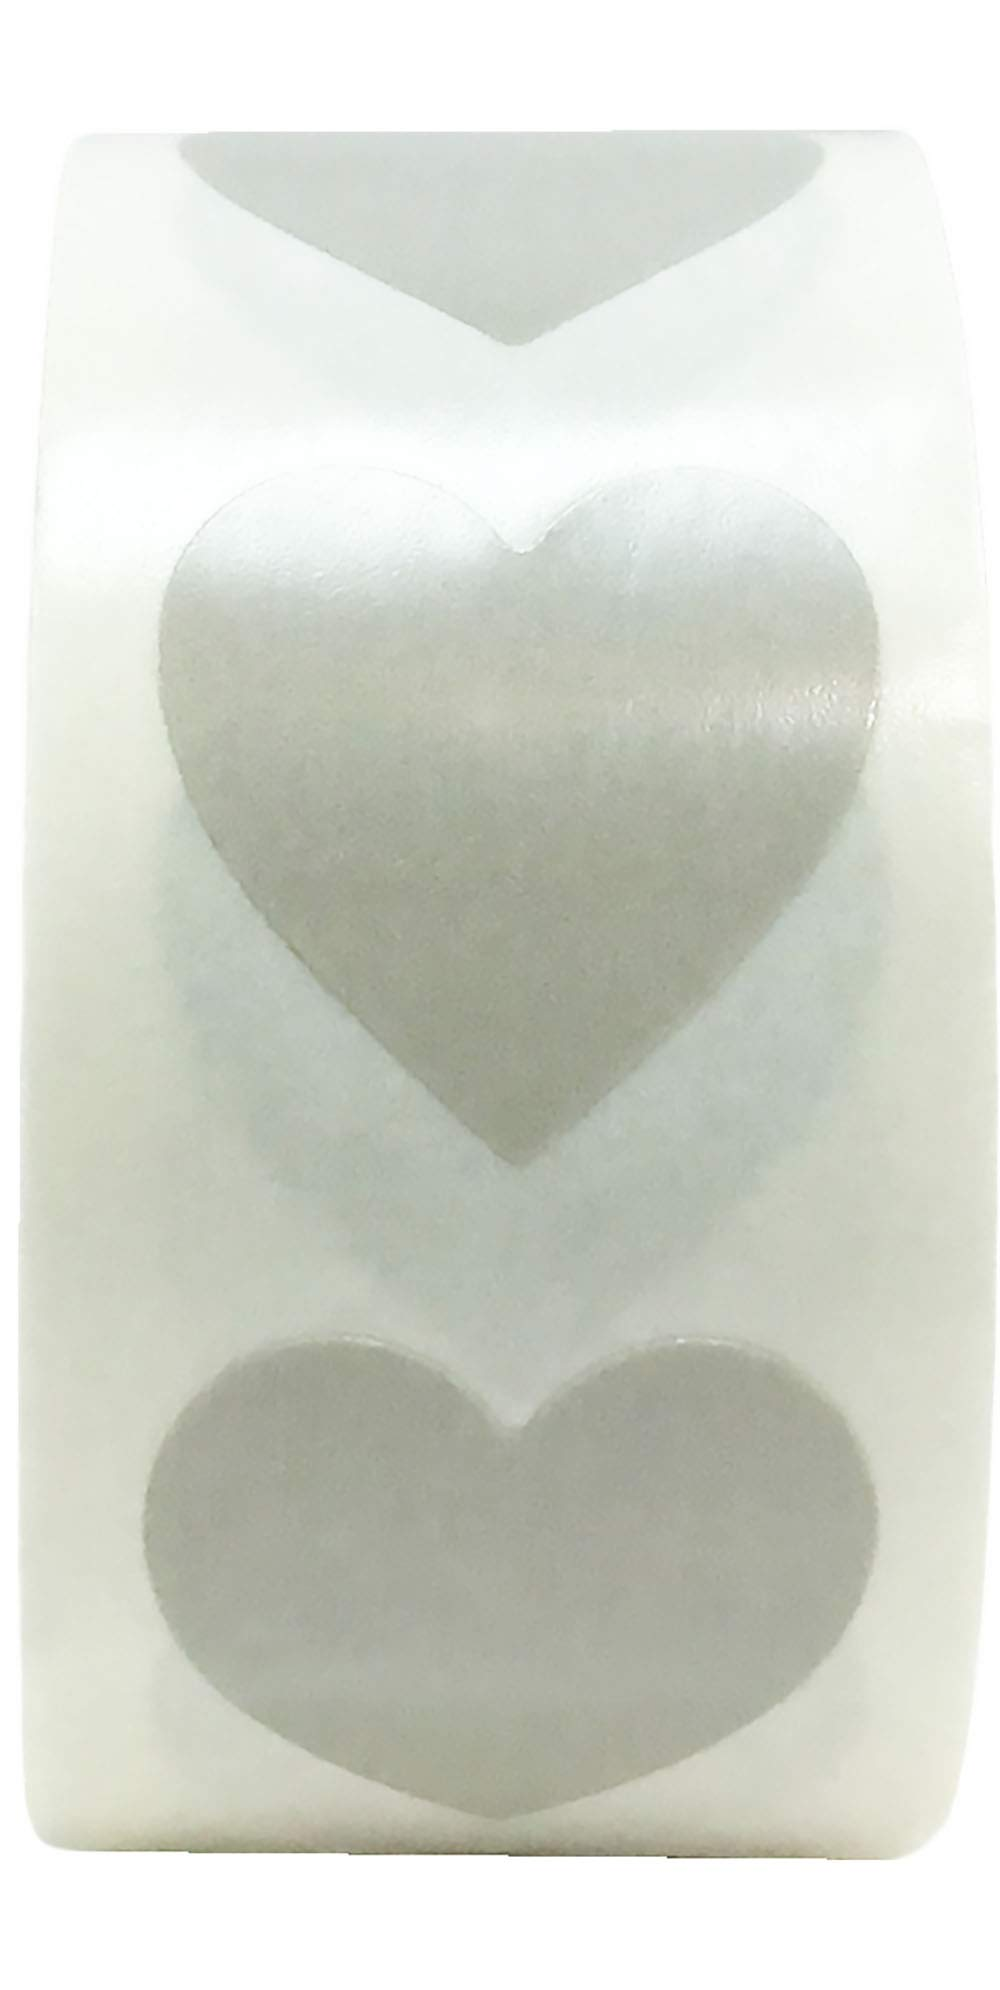 Grey Heart Stickers Valentine's Day Crafting Scrapbooking 0.75 Inch 500 Adhesive Stickers